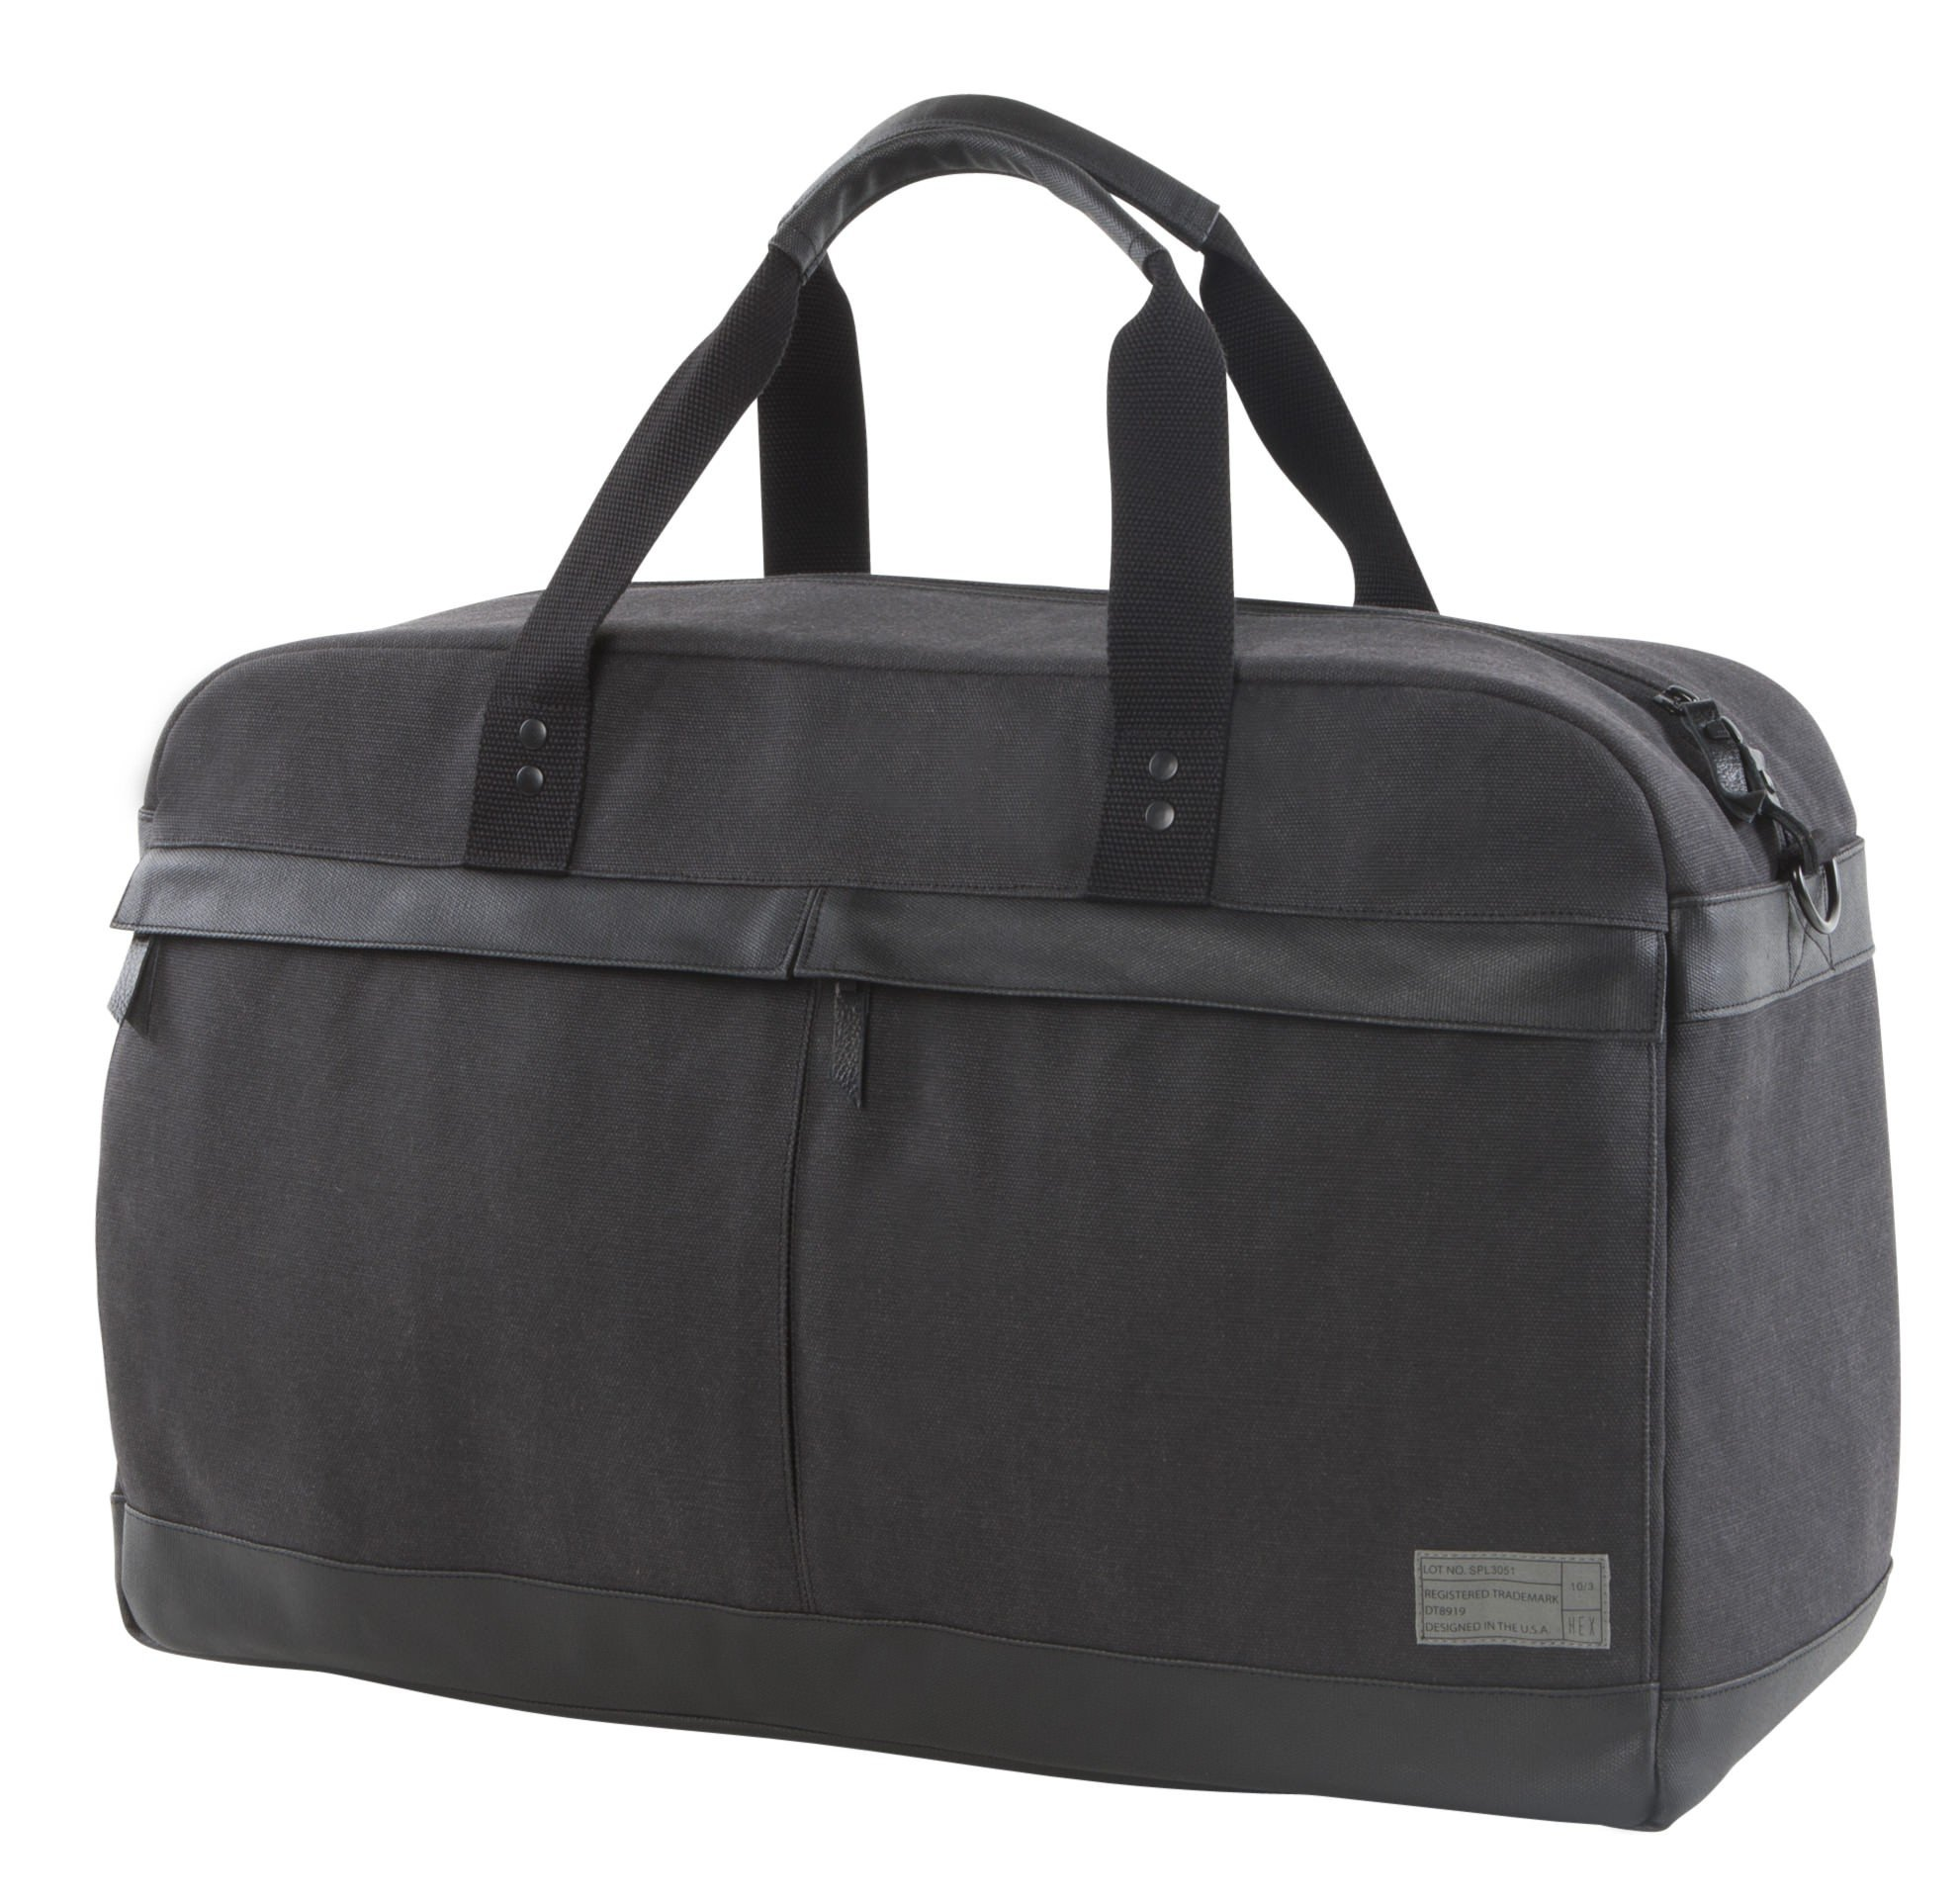 HEX Unisex Weekender Supply Charcoal Duffel Bag